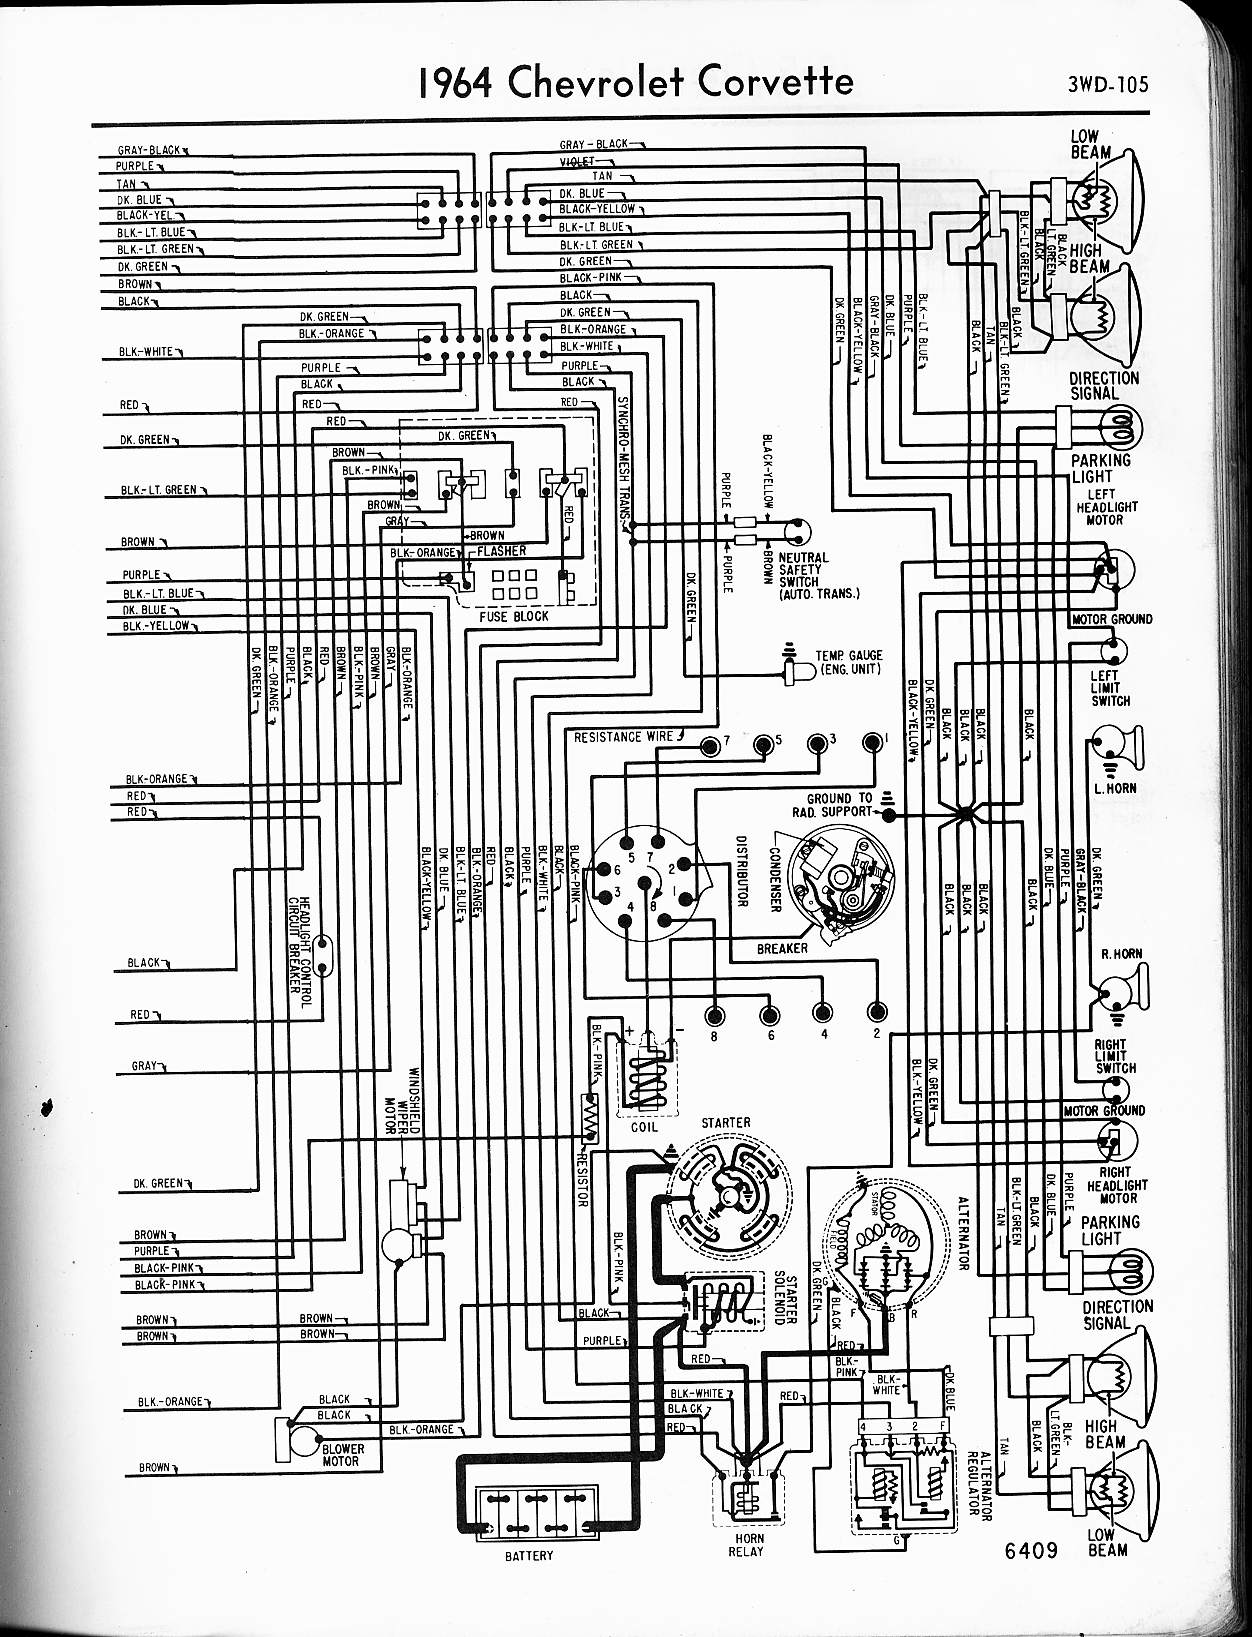 1972 Impala Wiring Diagram List Of Schematic Circuit Delco 11si Alternator 57 65 Chevy Diagrams Rh Oldcarmanualproject Com